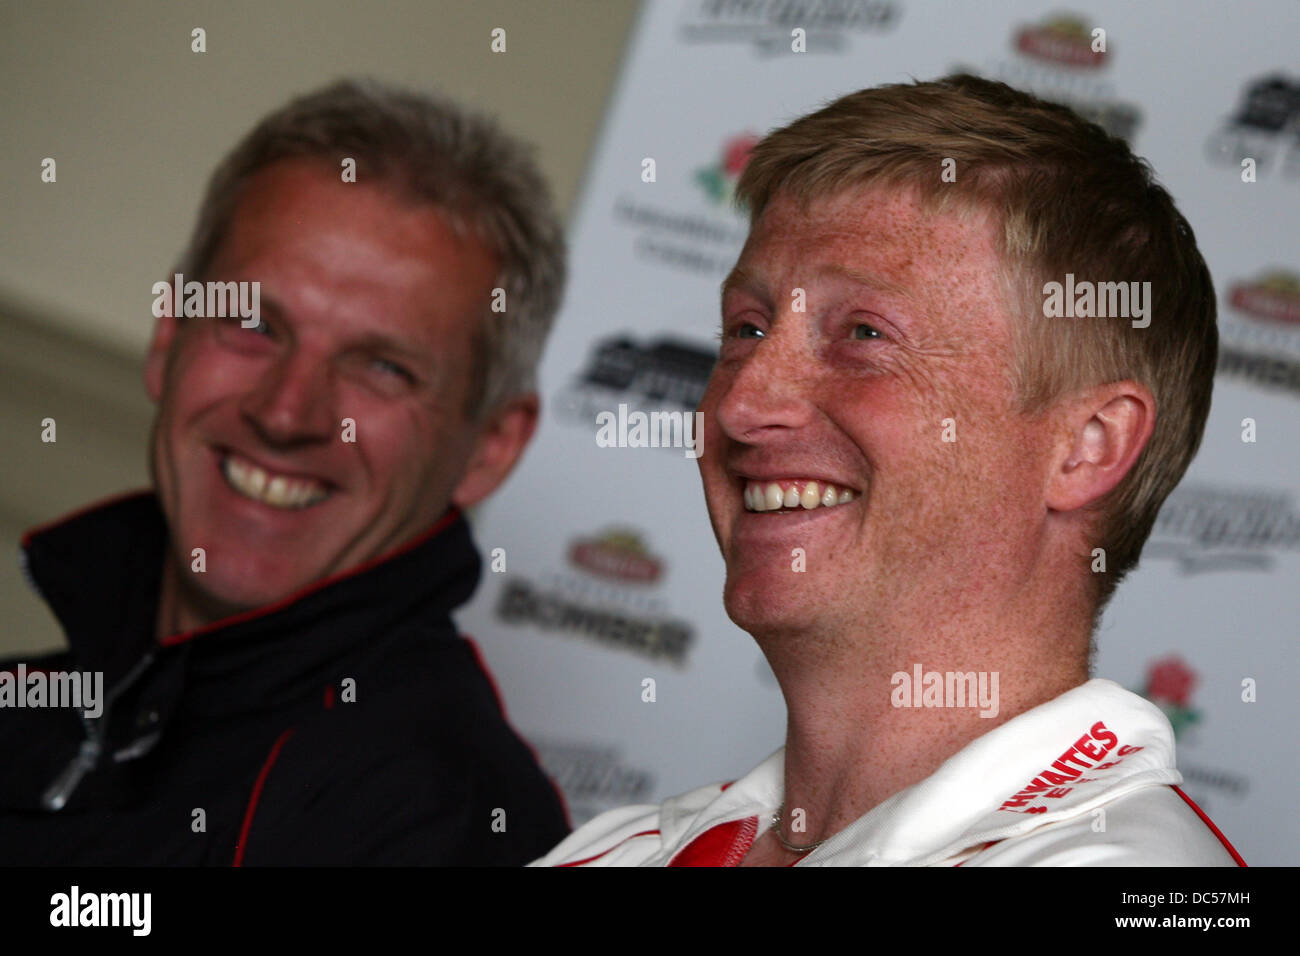 Lancashire County Cricket Club photocall April 6th 2009. Press conference. Glenn Chapple (R) and Peter Moores - Stock Image